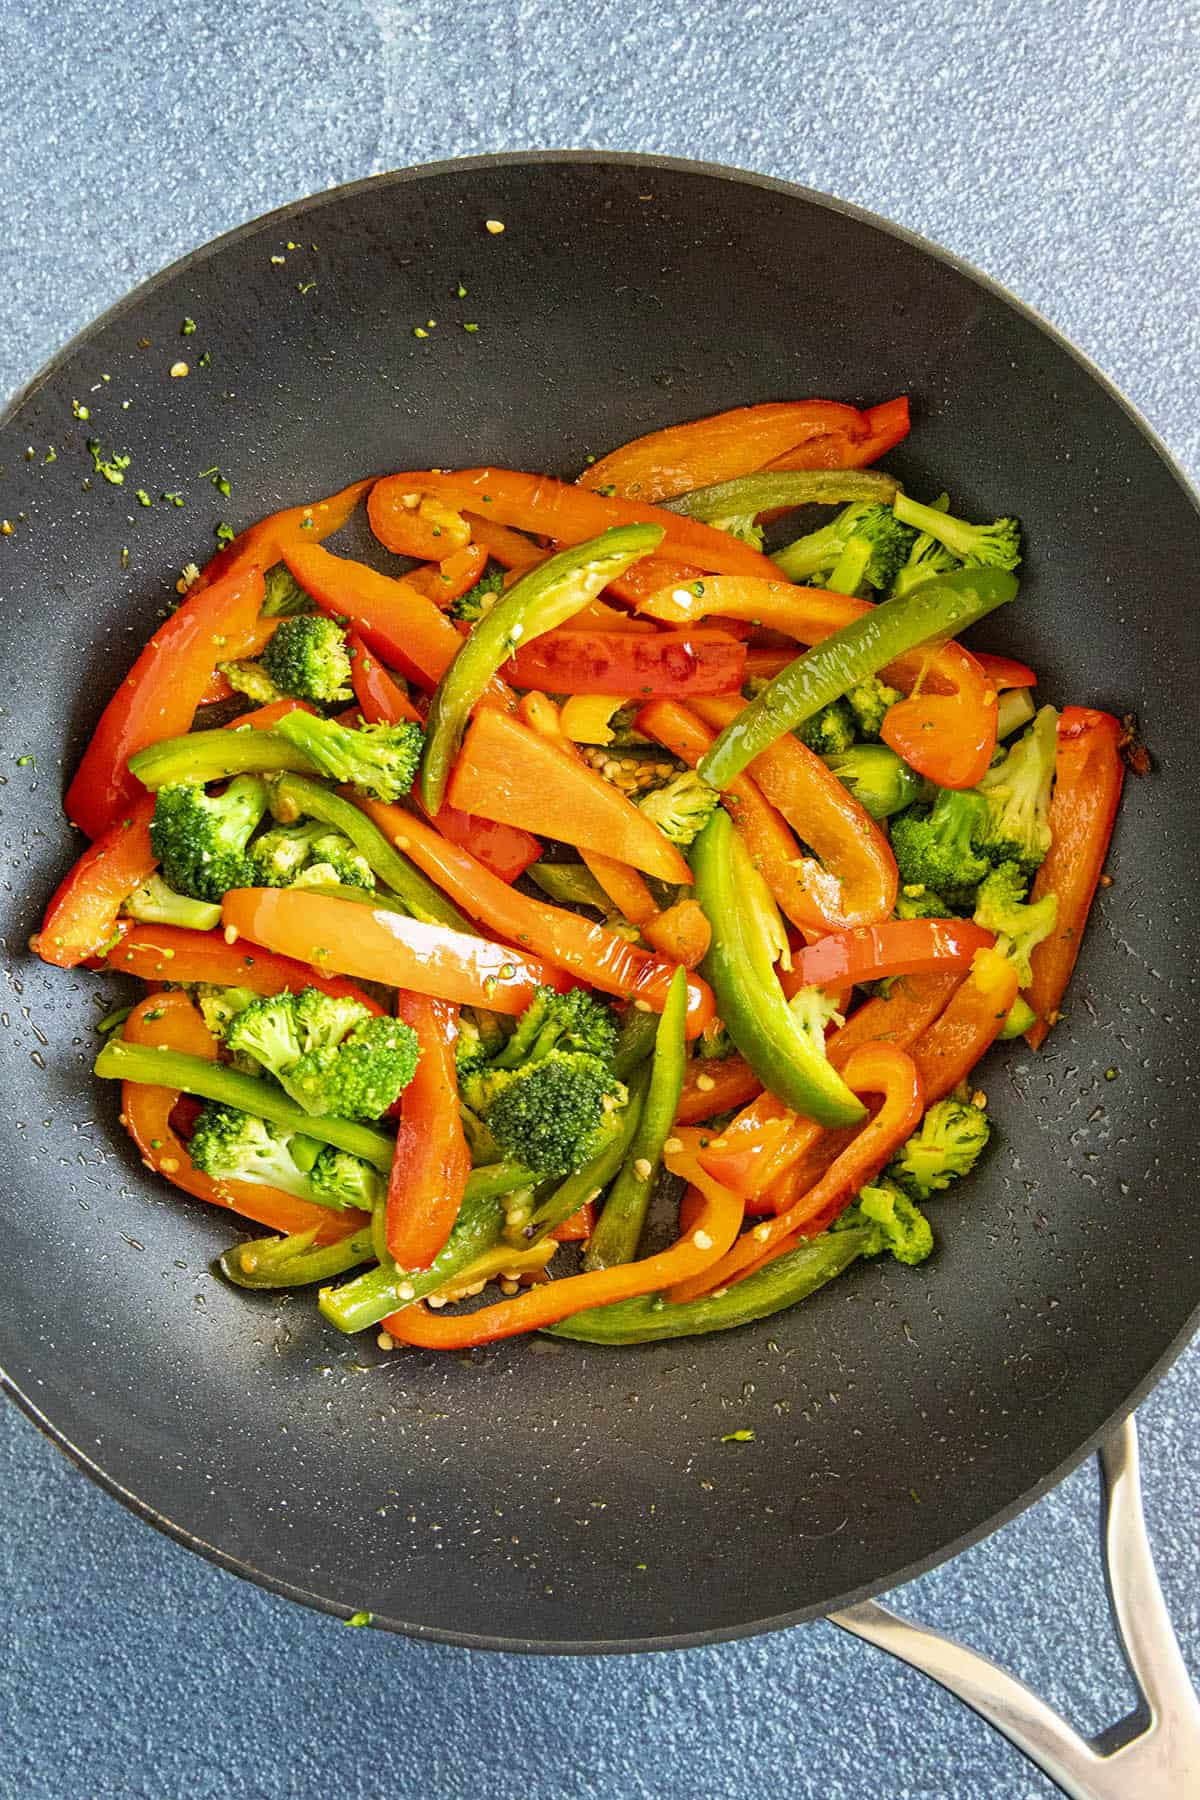 Searing peppers and broccoli into a hot pan